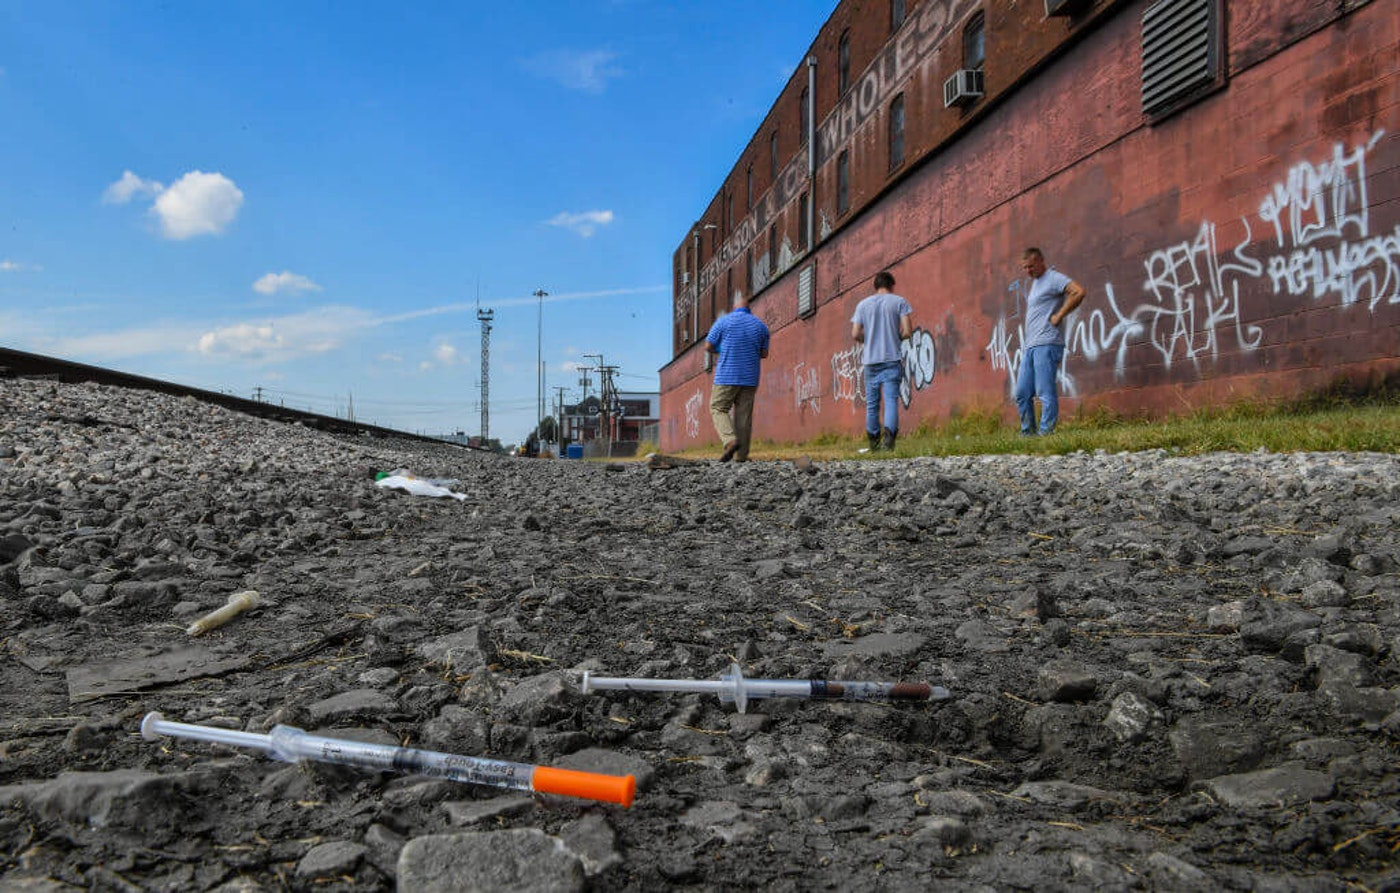 Two partially used syringes and needles are seen as Rocky Meadows, left, former addict and founder of Lifehouse treatment and recovery center, walks with two former addicts along rail tracks where addicts use drugs on October 2, 2019 in Huntington, WV. (Photo by Ricky Carioti/The Washington Post via Getty Images)